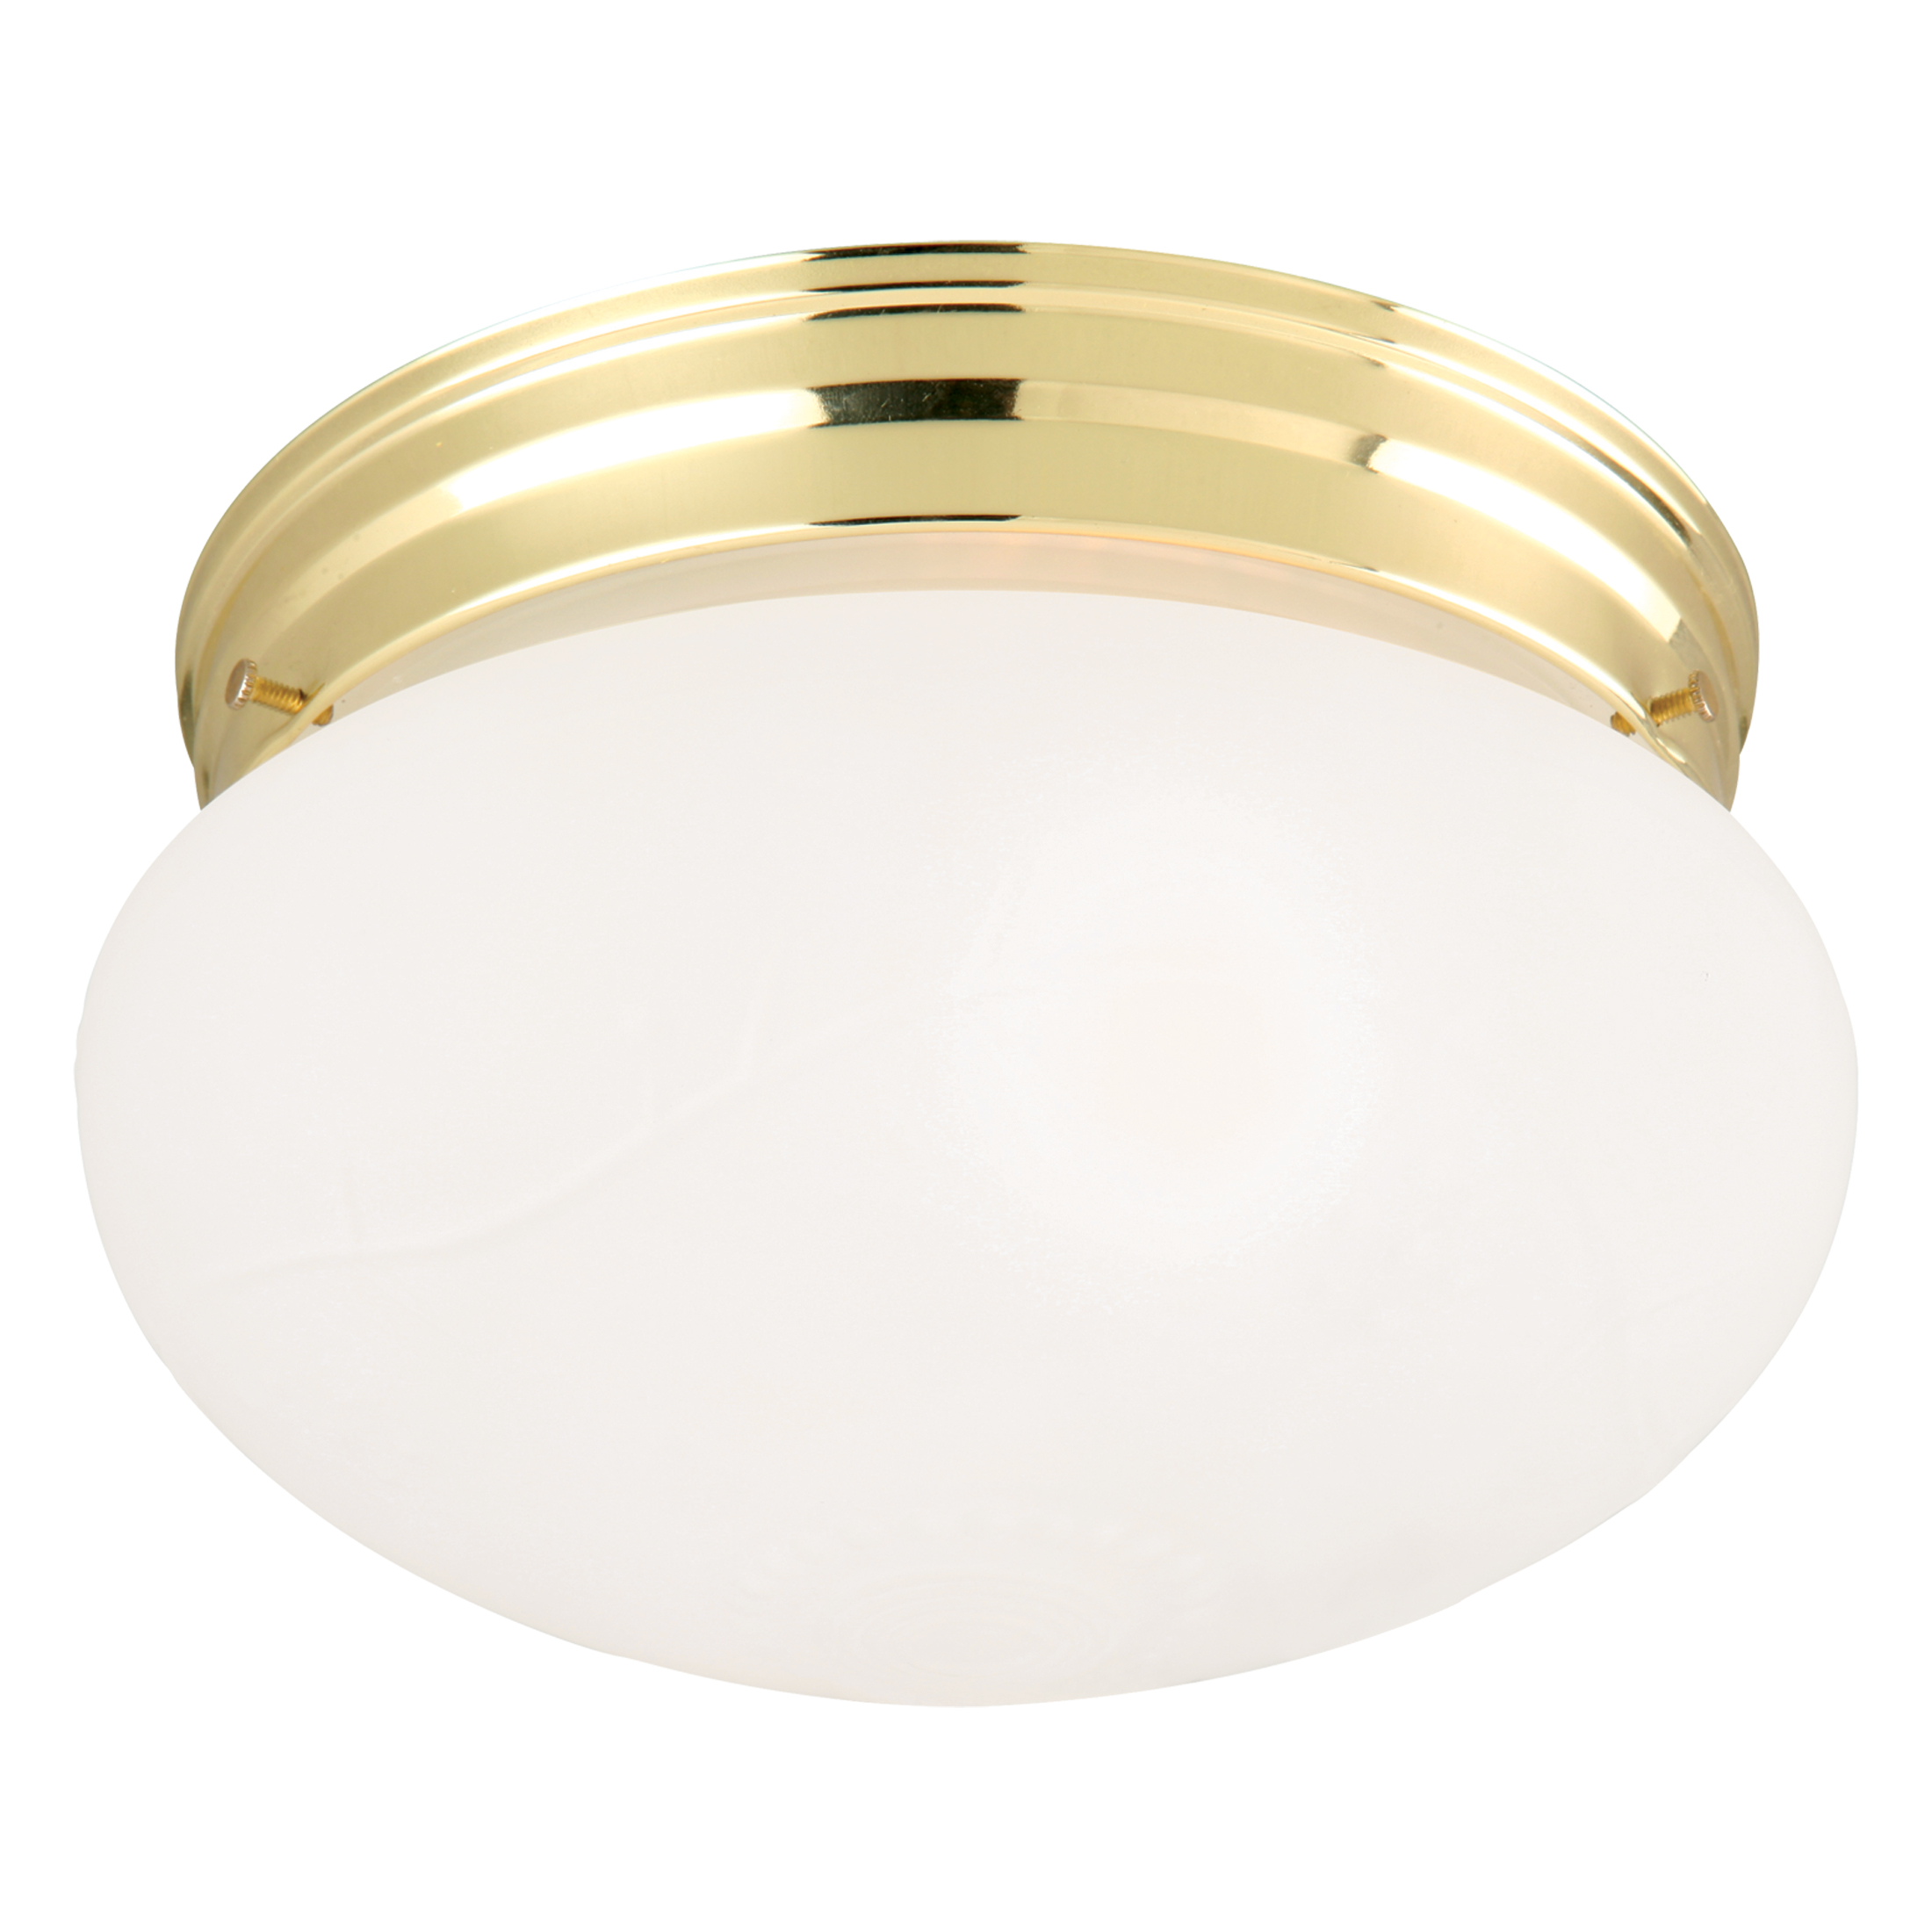 1-Light Ceiling Mount 501841 | Lighting | Design House